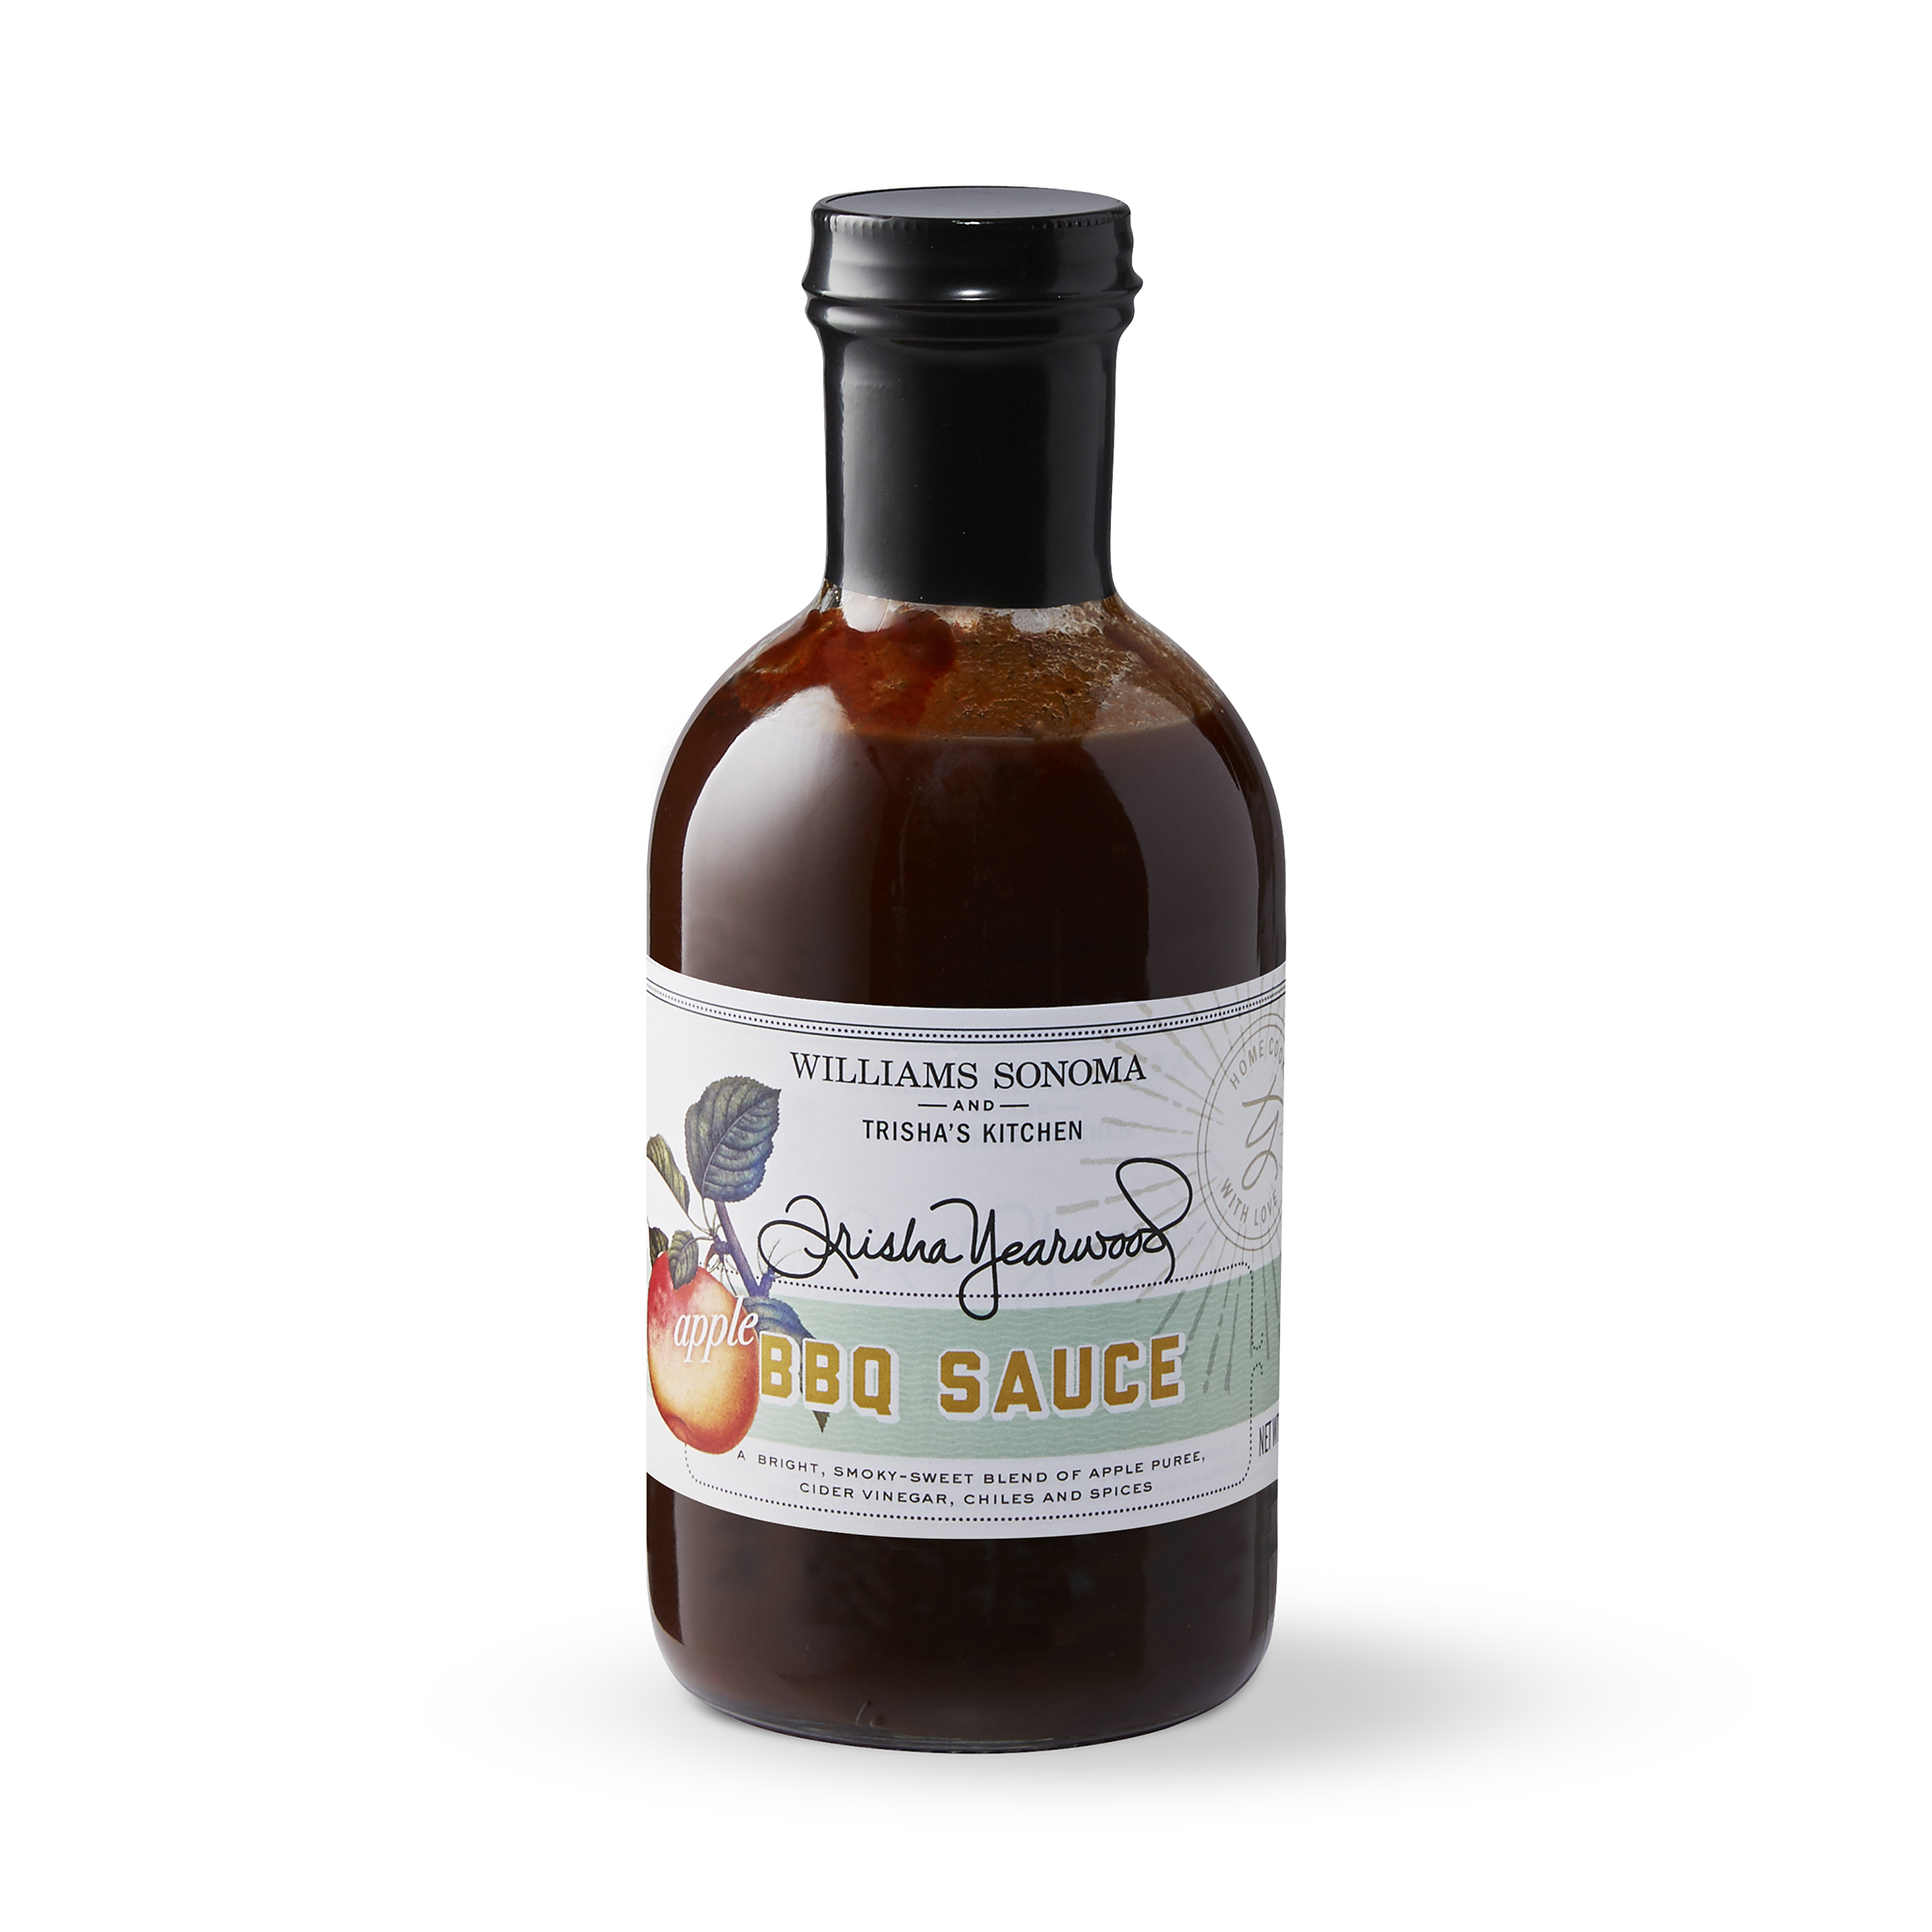 Williams Sonoma and Trisha's Kitchen Apple BBQ Sauce (Photo: Business Wire)